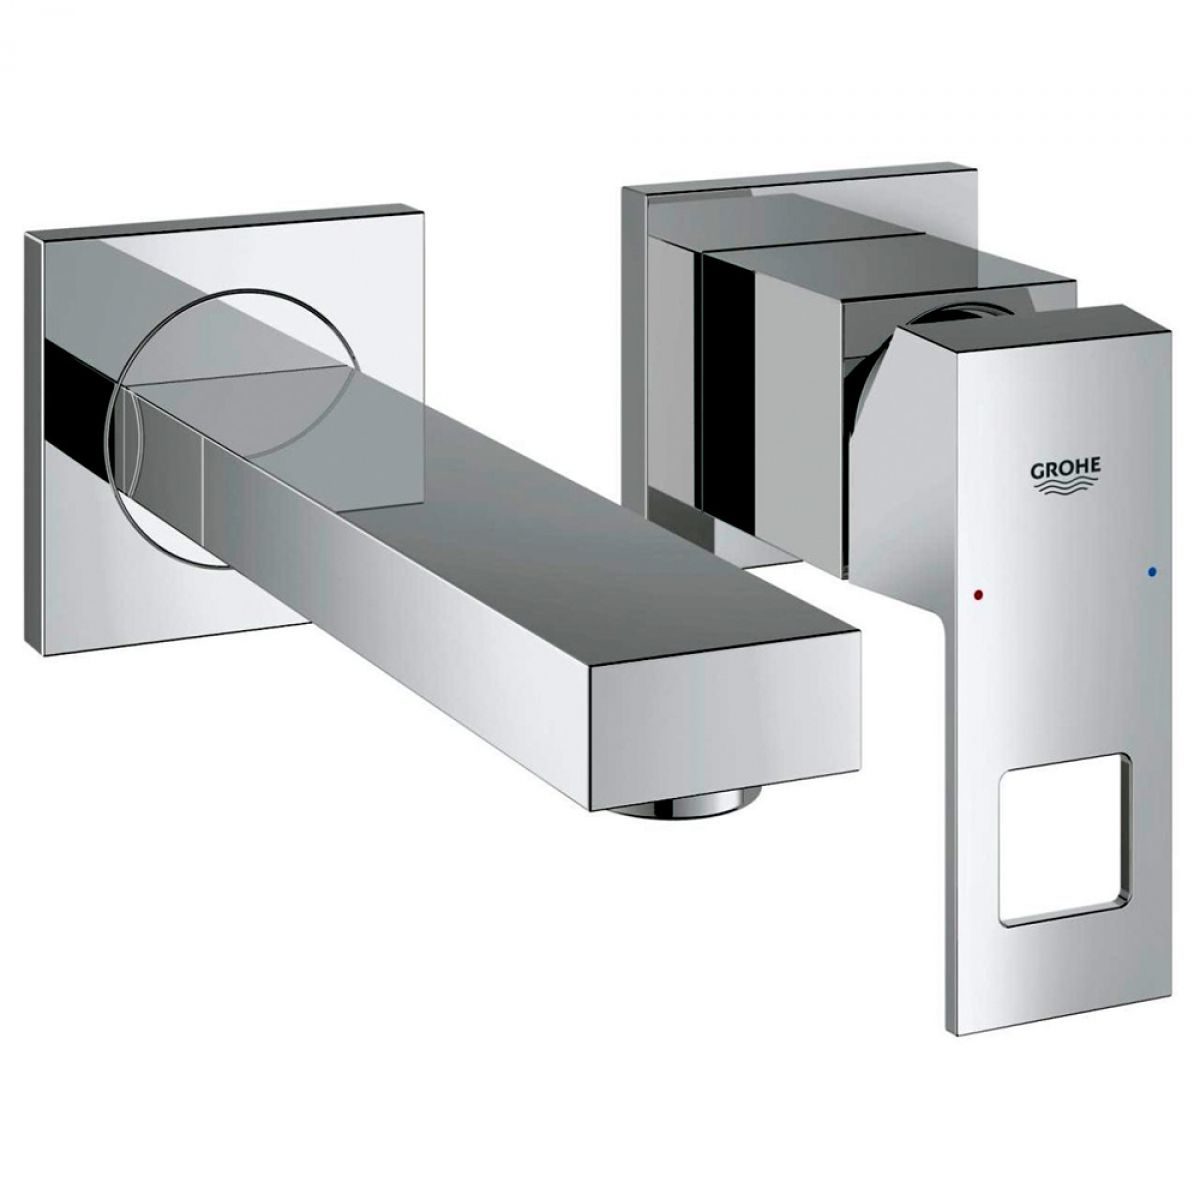 Grohe Eurocube 2 Hole Wall Mounted Basin Mixer Uk Bathrooms